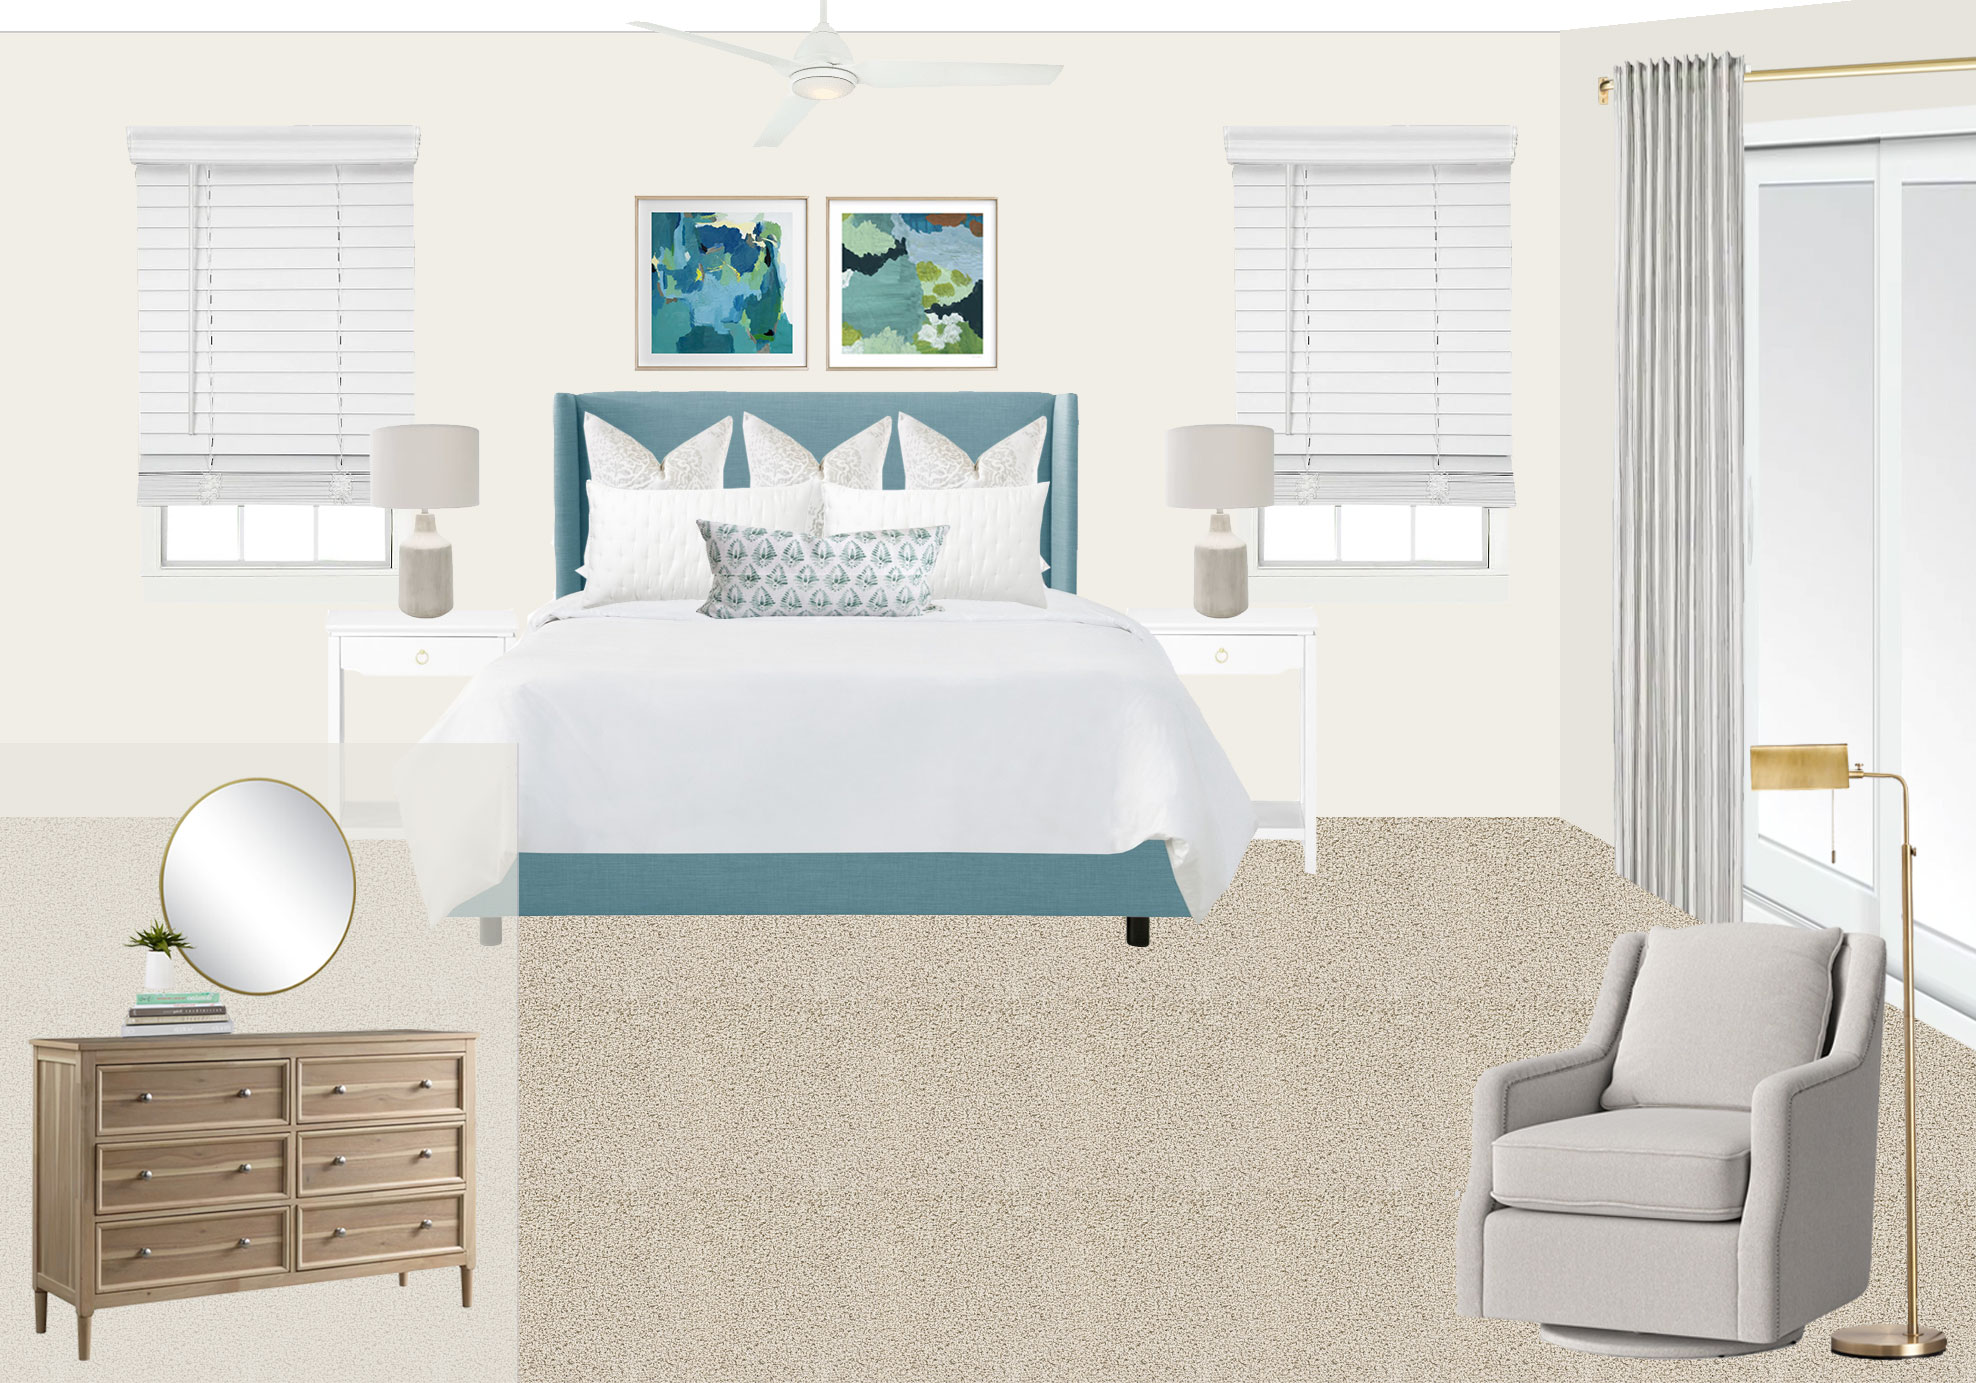 """""""Tailored Coastal"""" bedroom design for a beach house in Corolla, North Carolina by Mix & Match Design Company. The blue upholstered bed pops against the off-white walls and the light wood dresser gives it a subtle beachy vibe."""